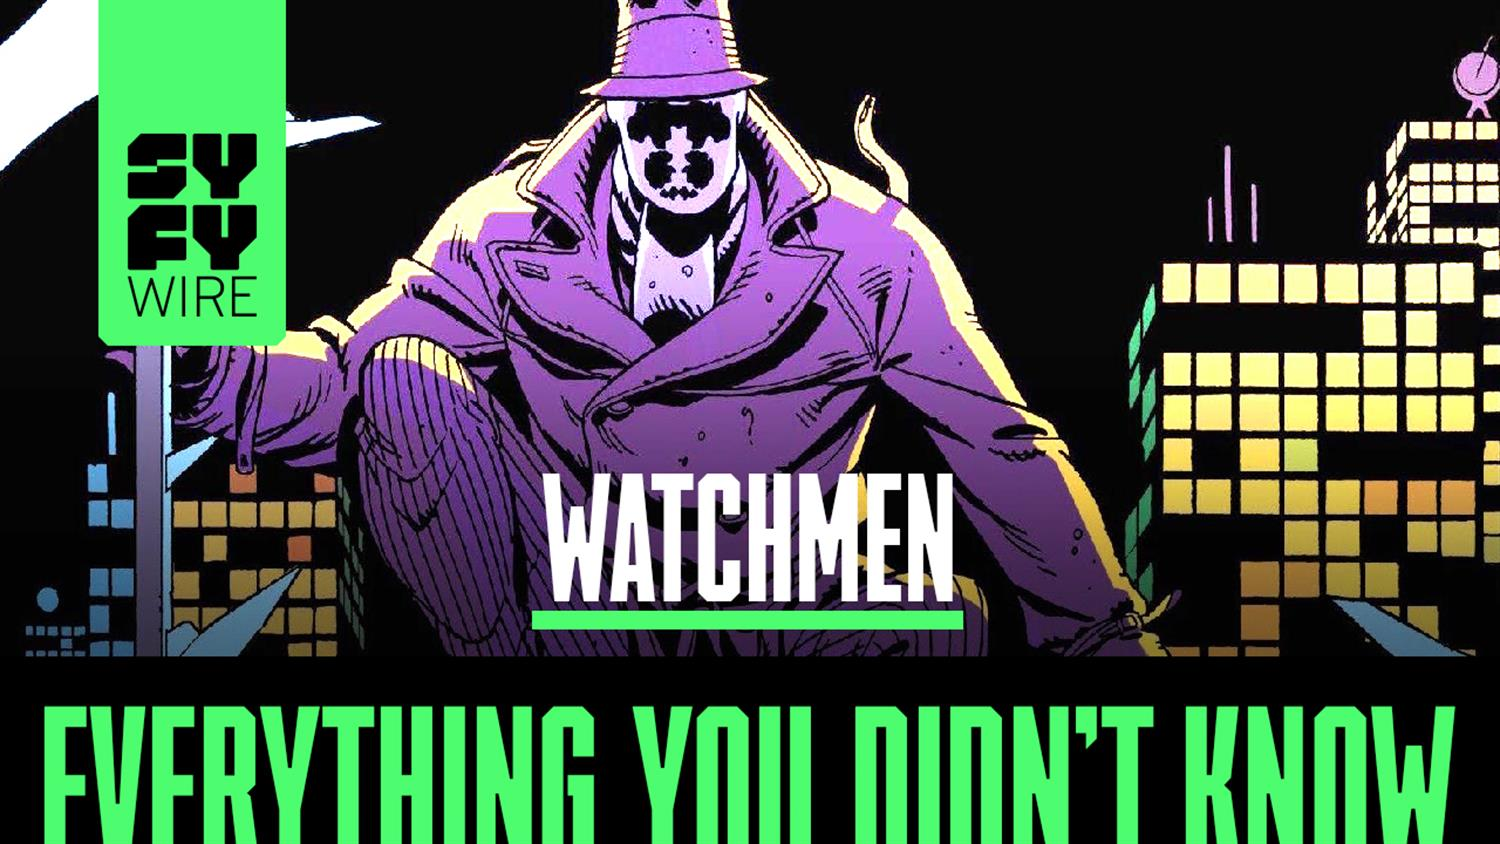 Watchmen (The Graphic Novel): Everything You Didn't Know